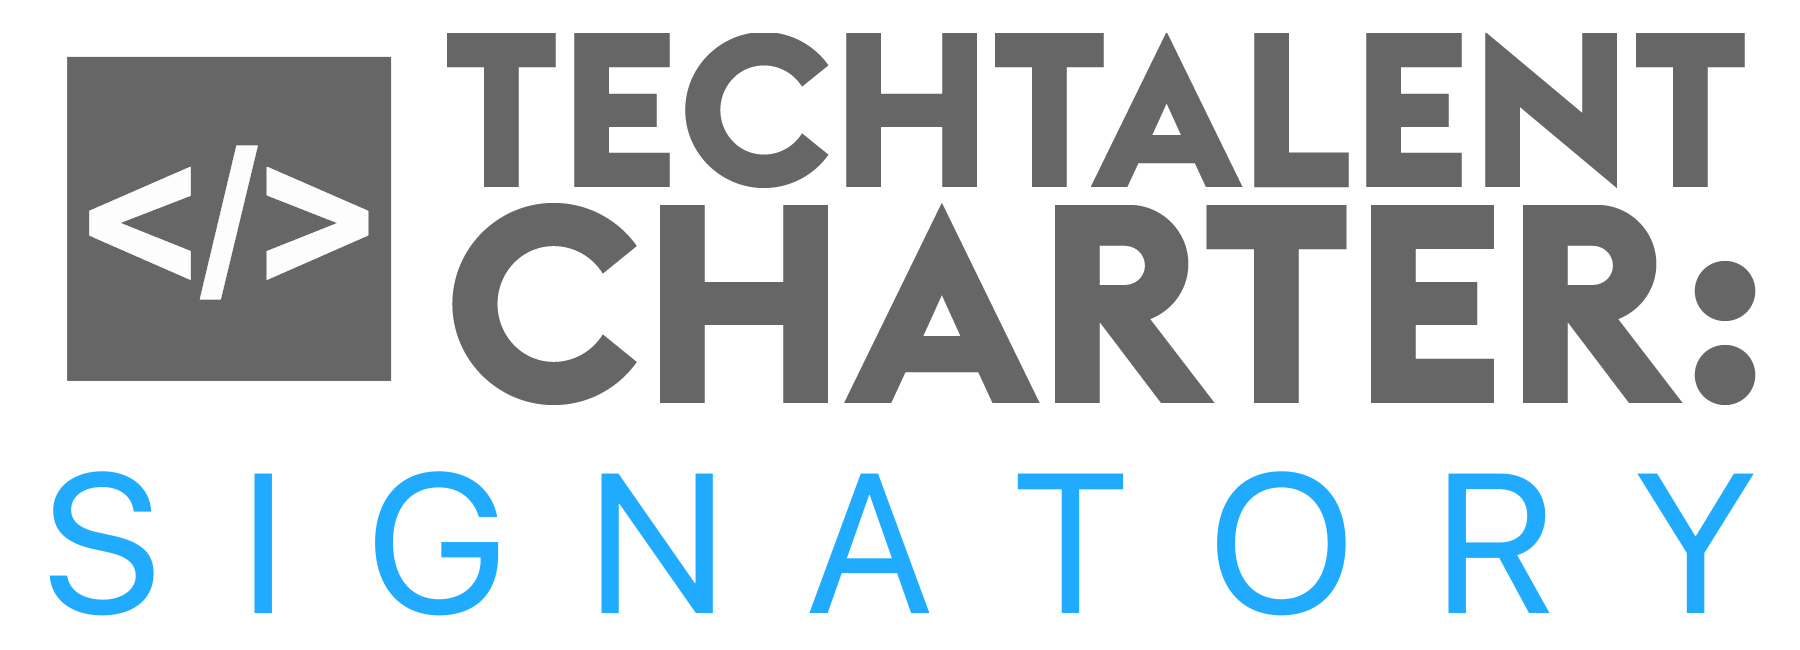 Tech Talent Charter Signatory logo